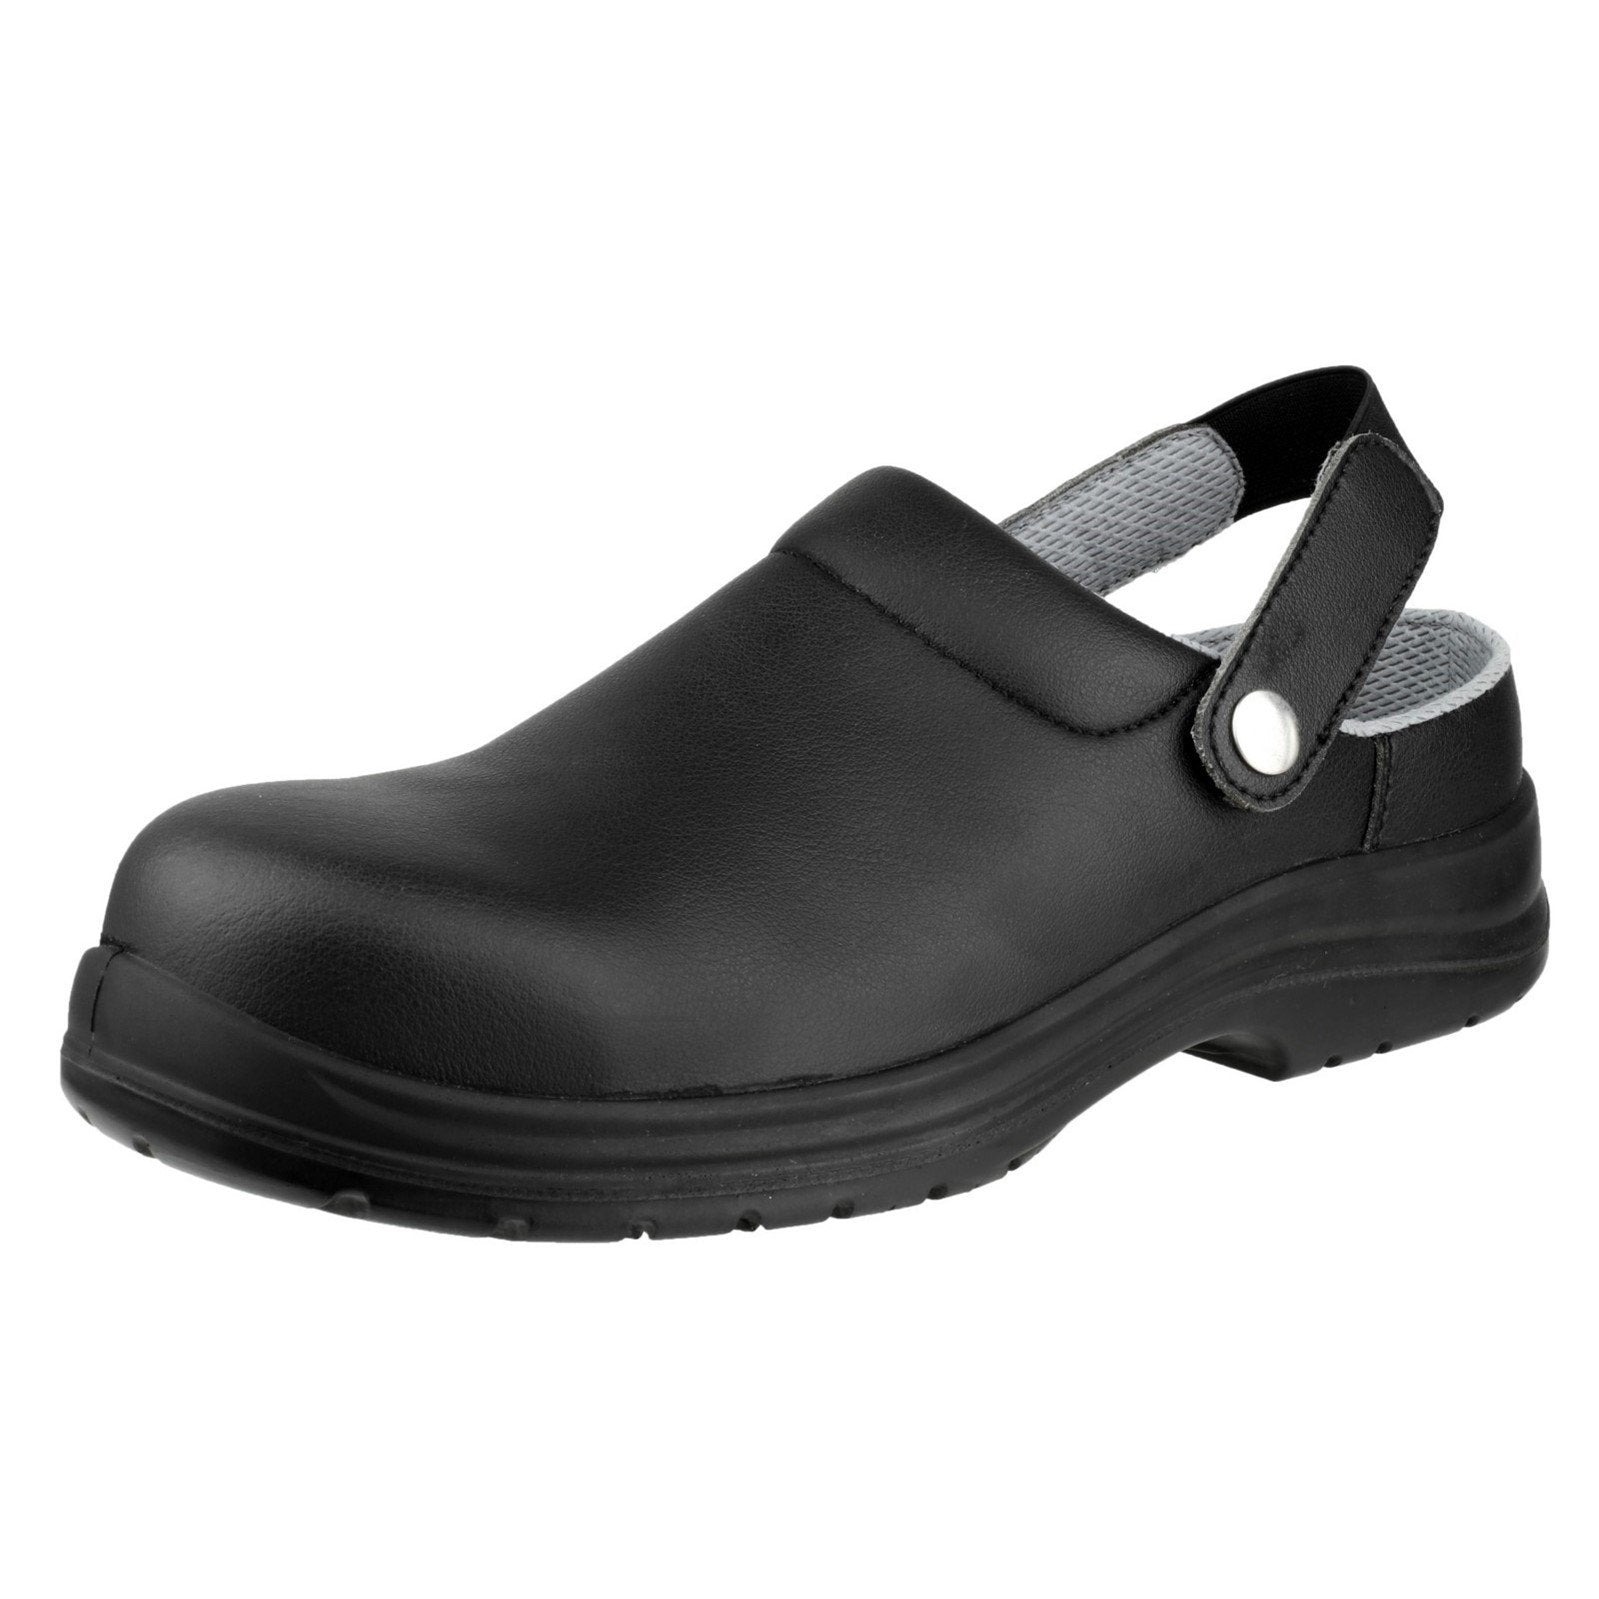 Amblers Safety Clog Shoe